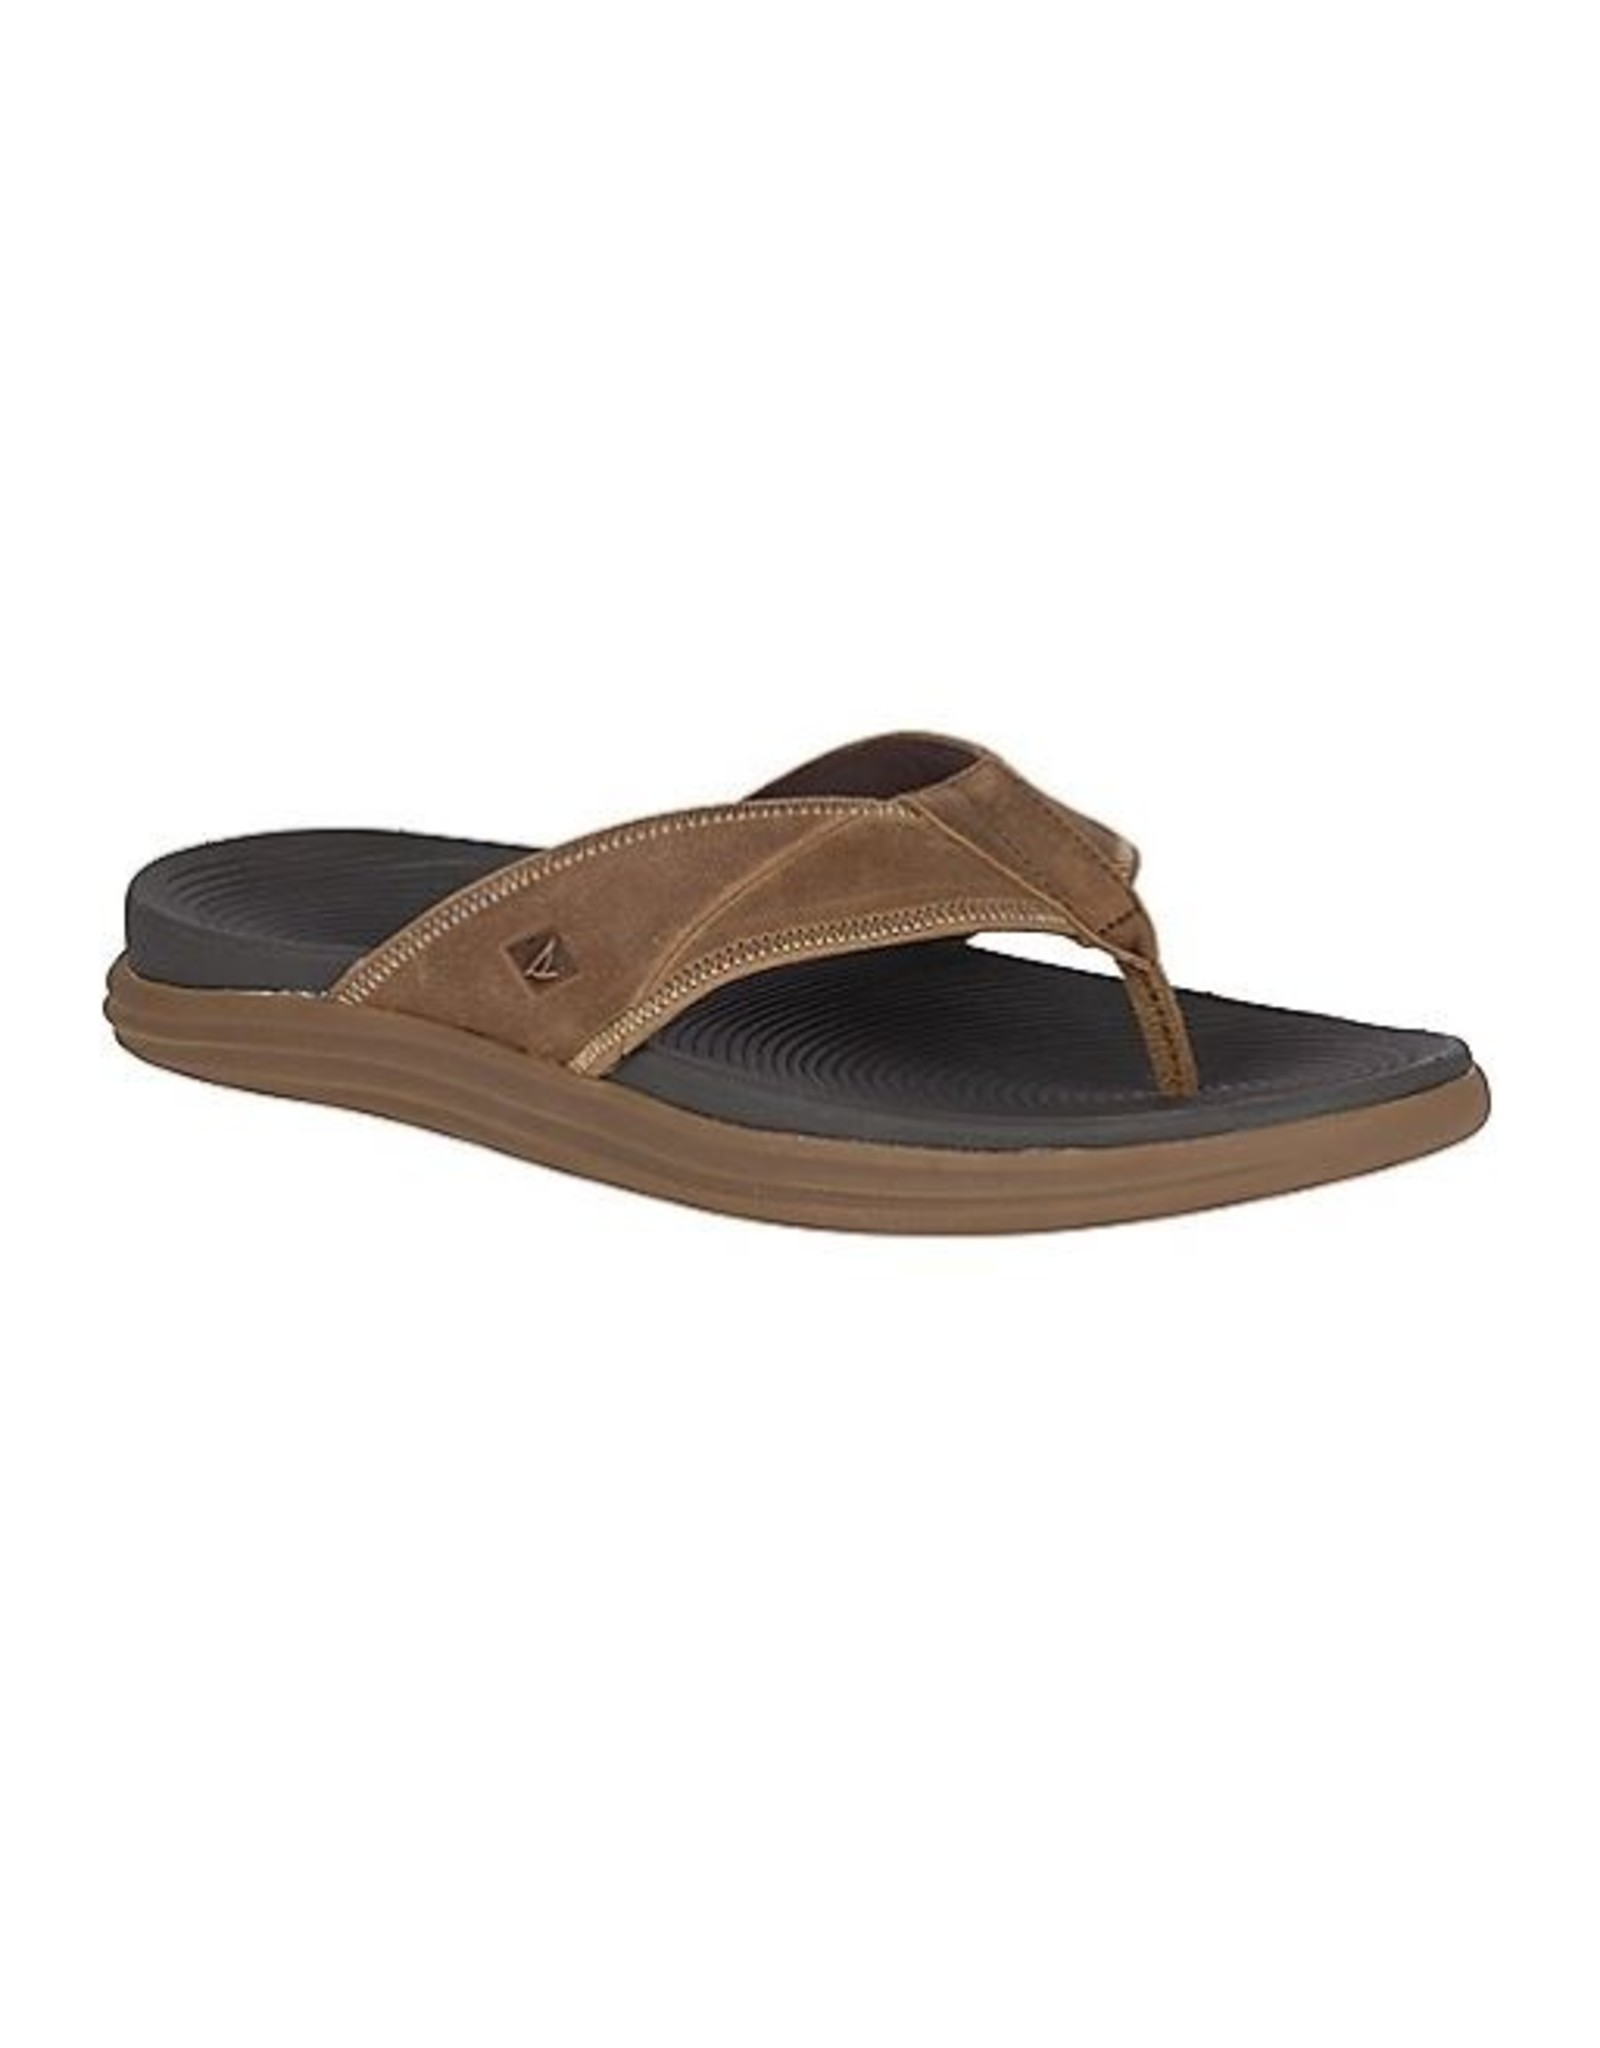 Sperry Top Siders Men's Regatta Thong